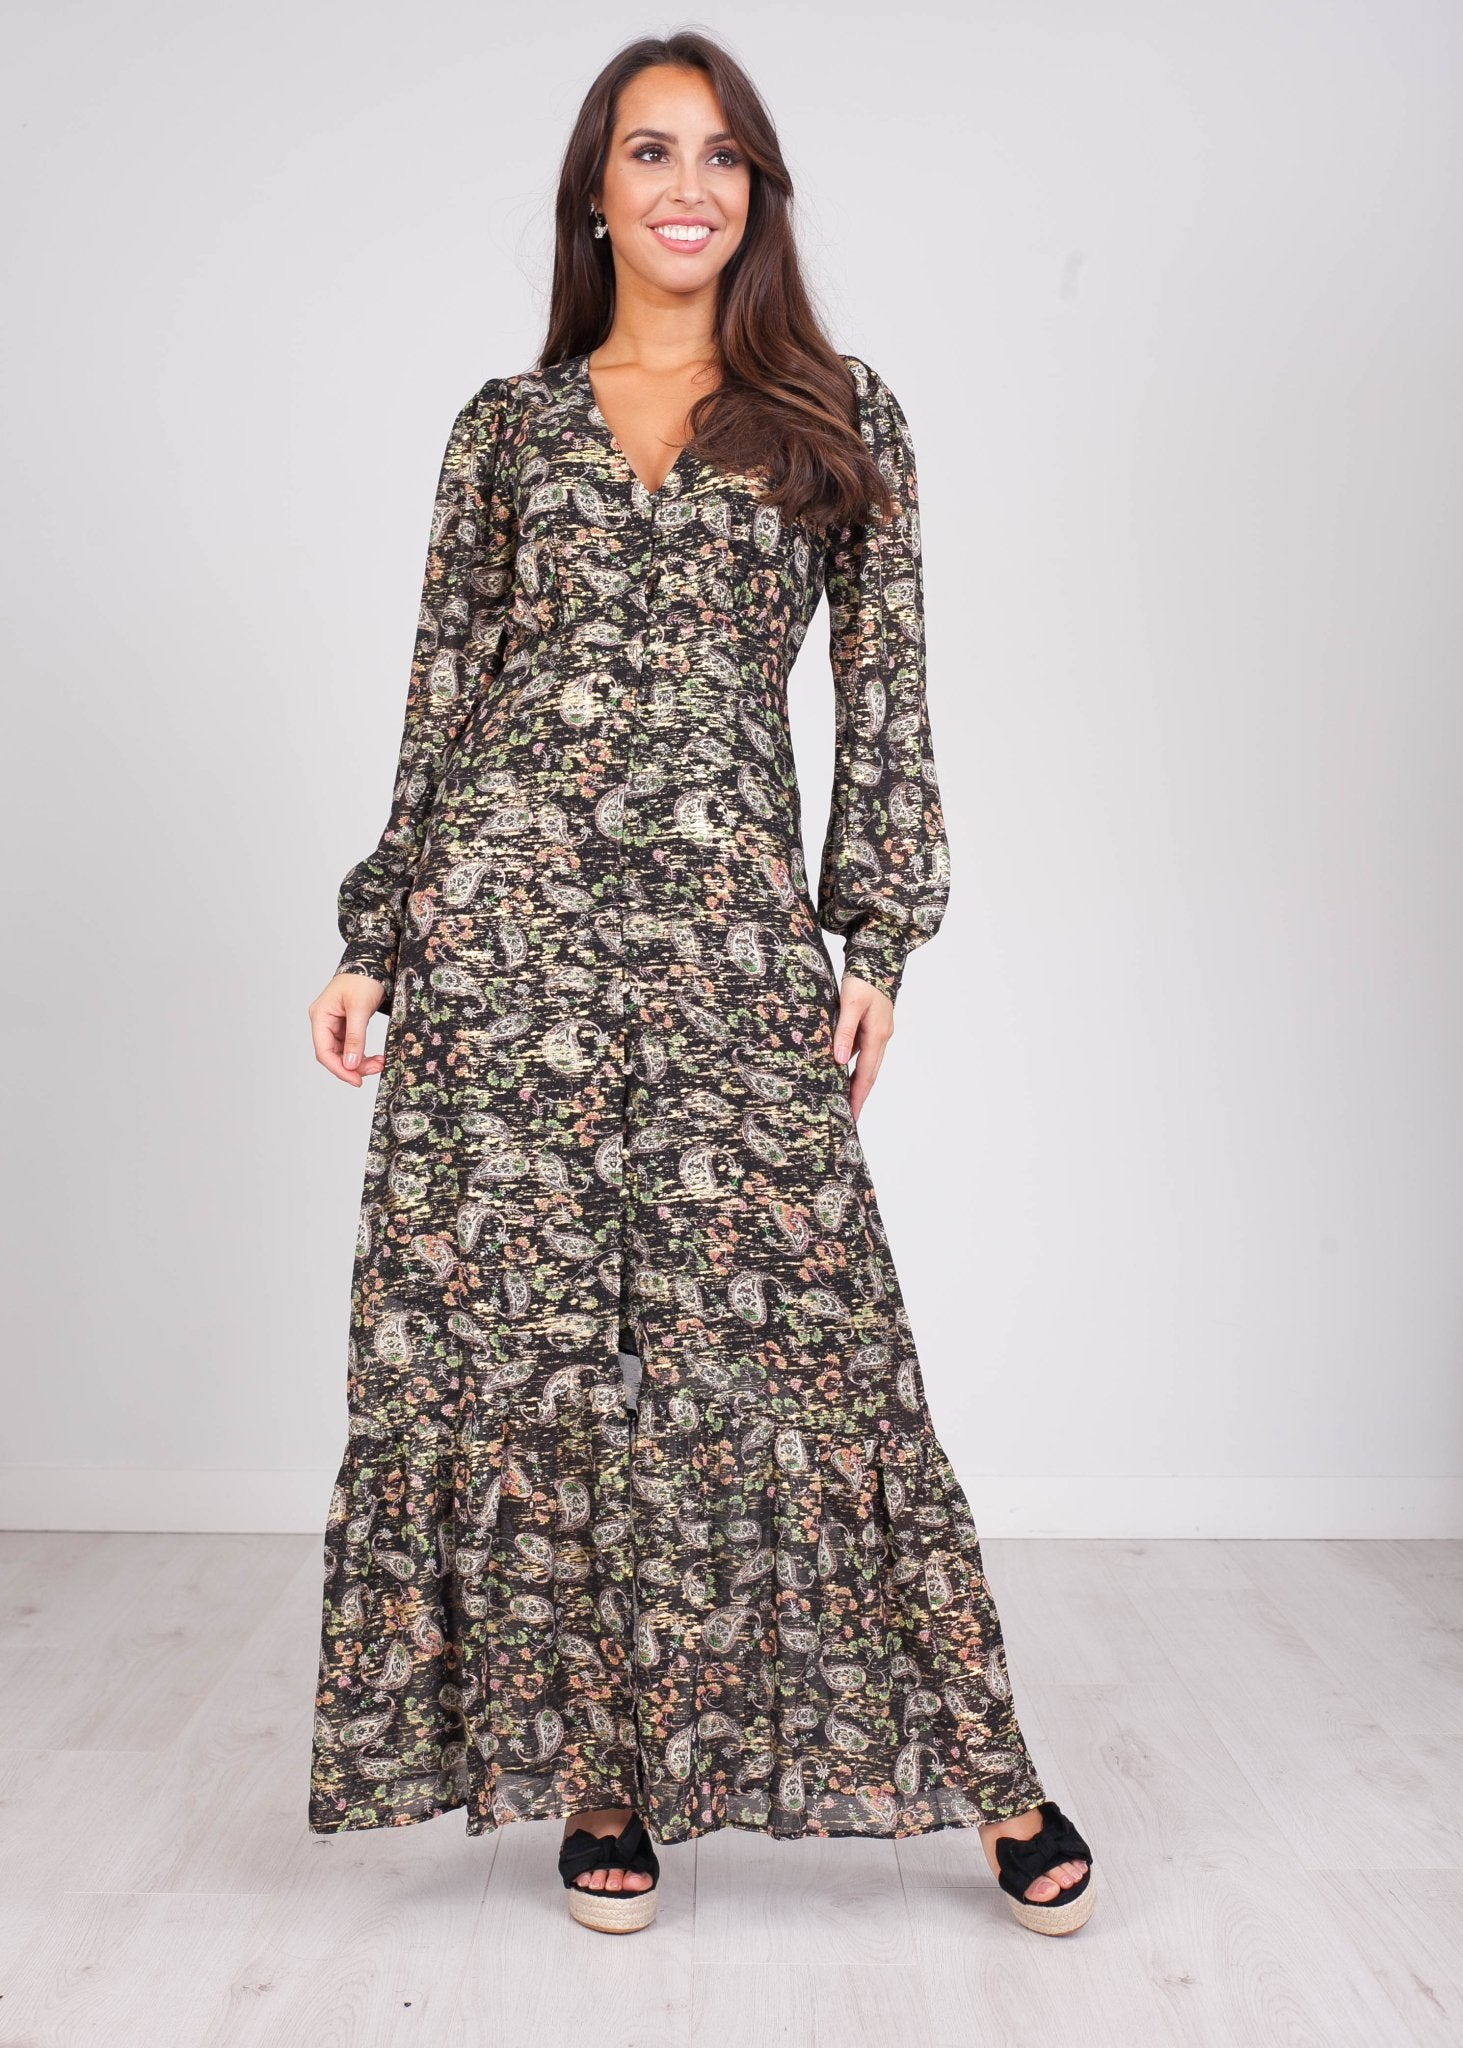 Emilia Black Paisley Printed Dress - The Walk in Wardrobe